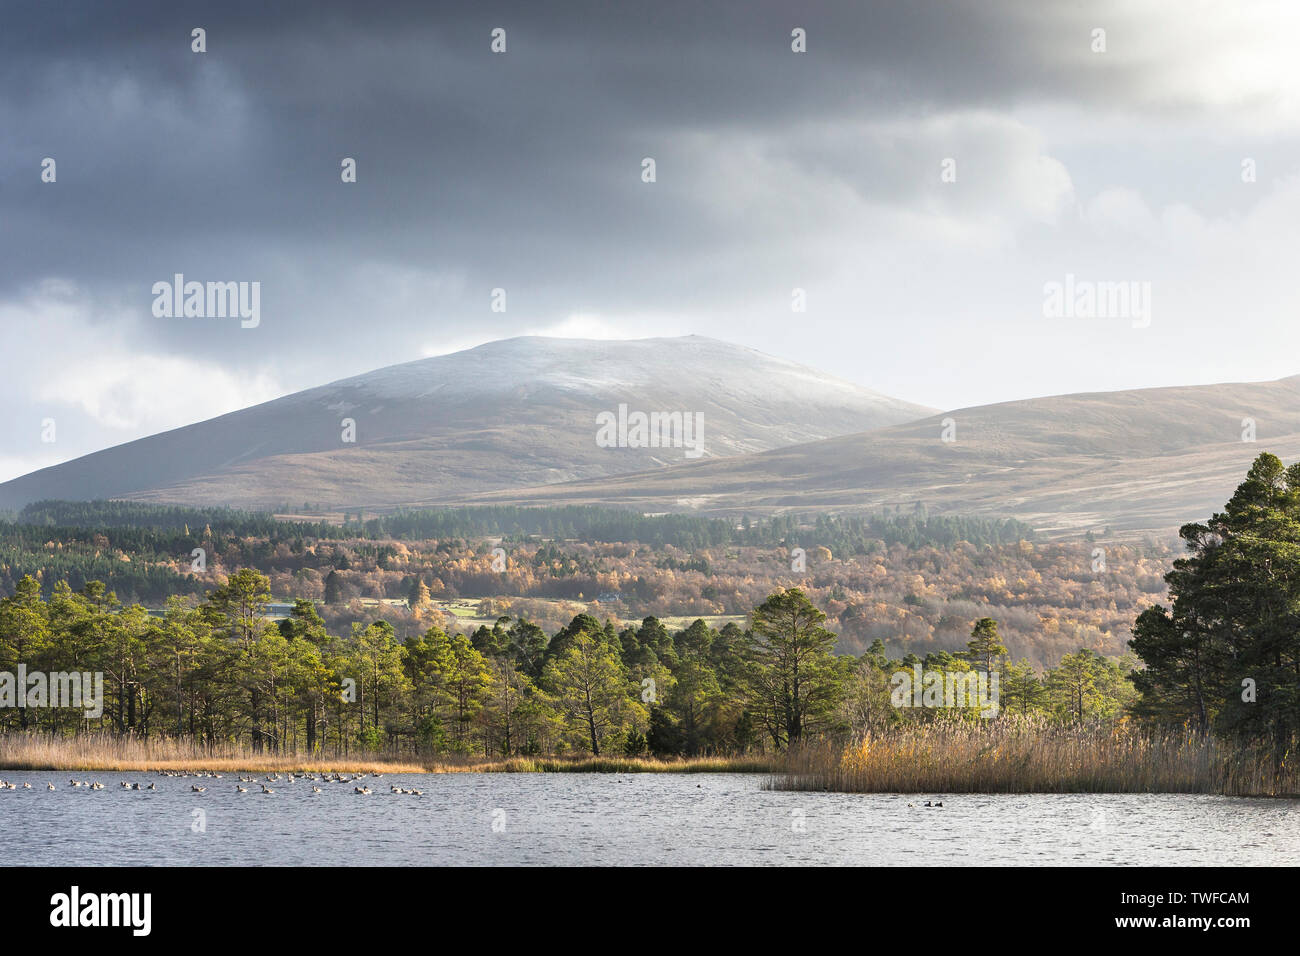 Loch Garten and the Meal a' Bhuachaille in the Cairngorms National Park of Scotland. - Stock Image